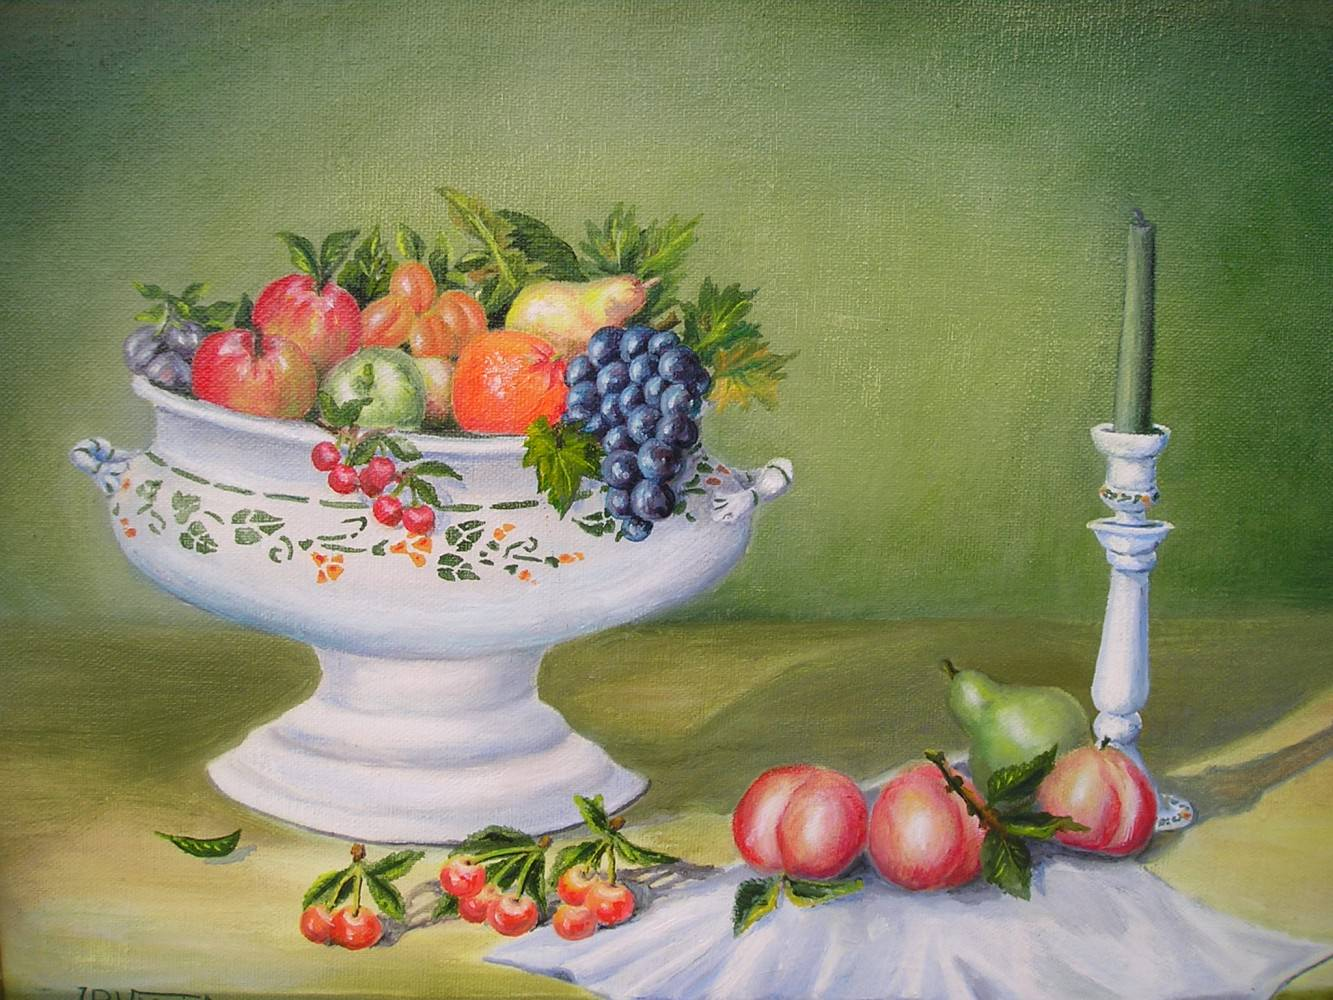 Coupe de fruits 1 jp viguier artiste peintre - Jeux ou on coupe des fruits ...